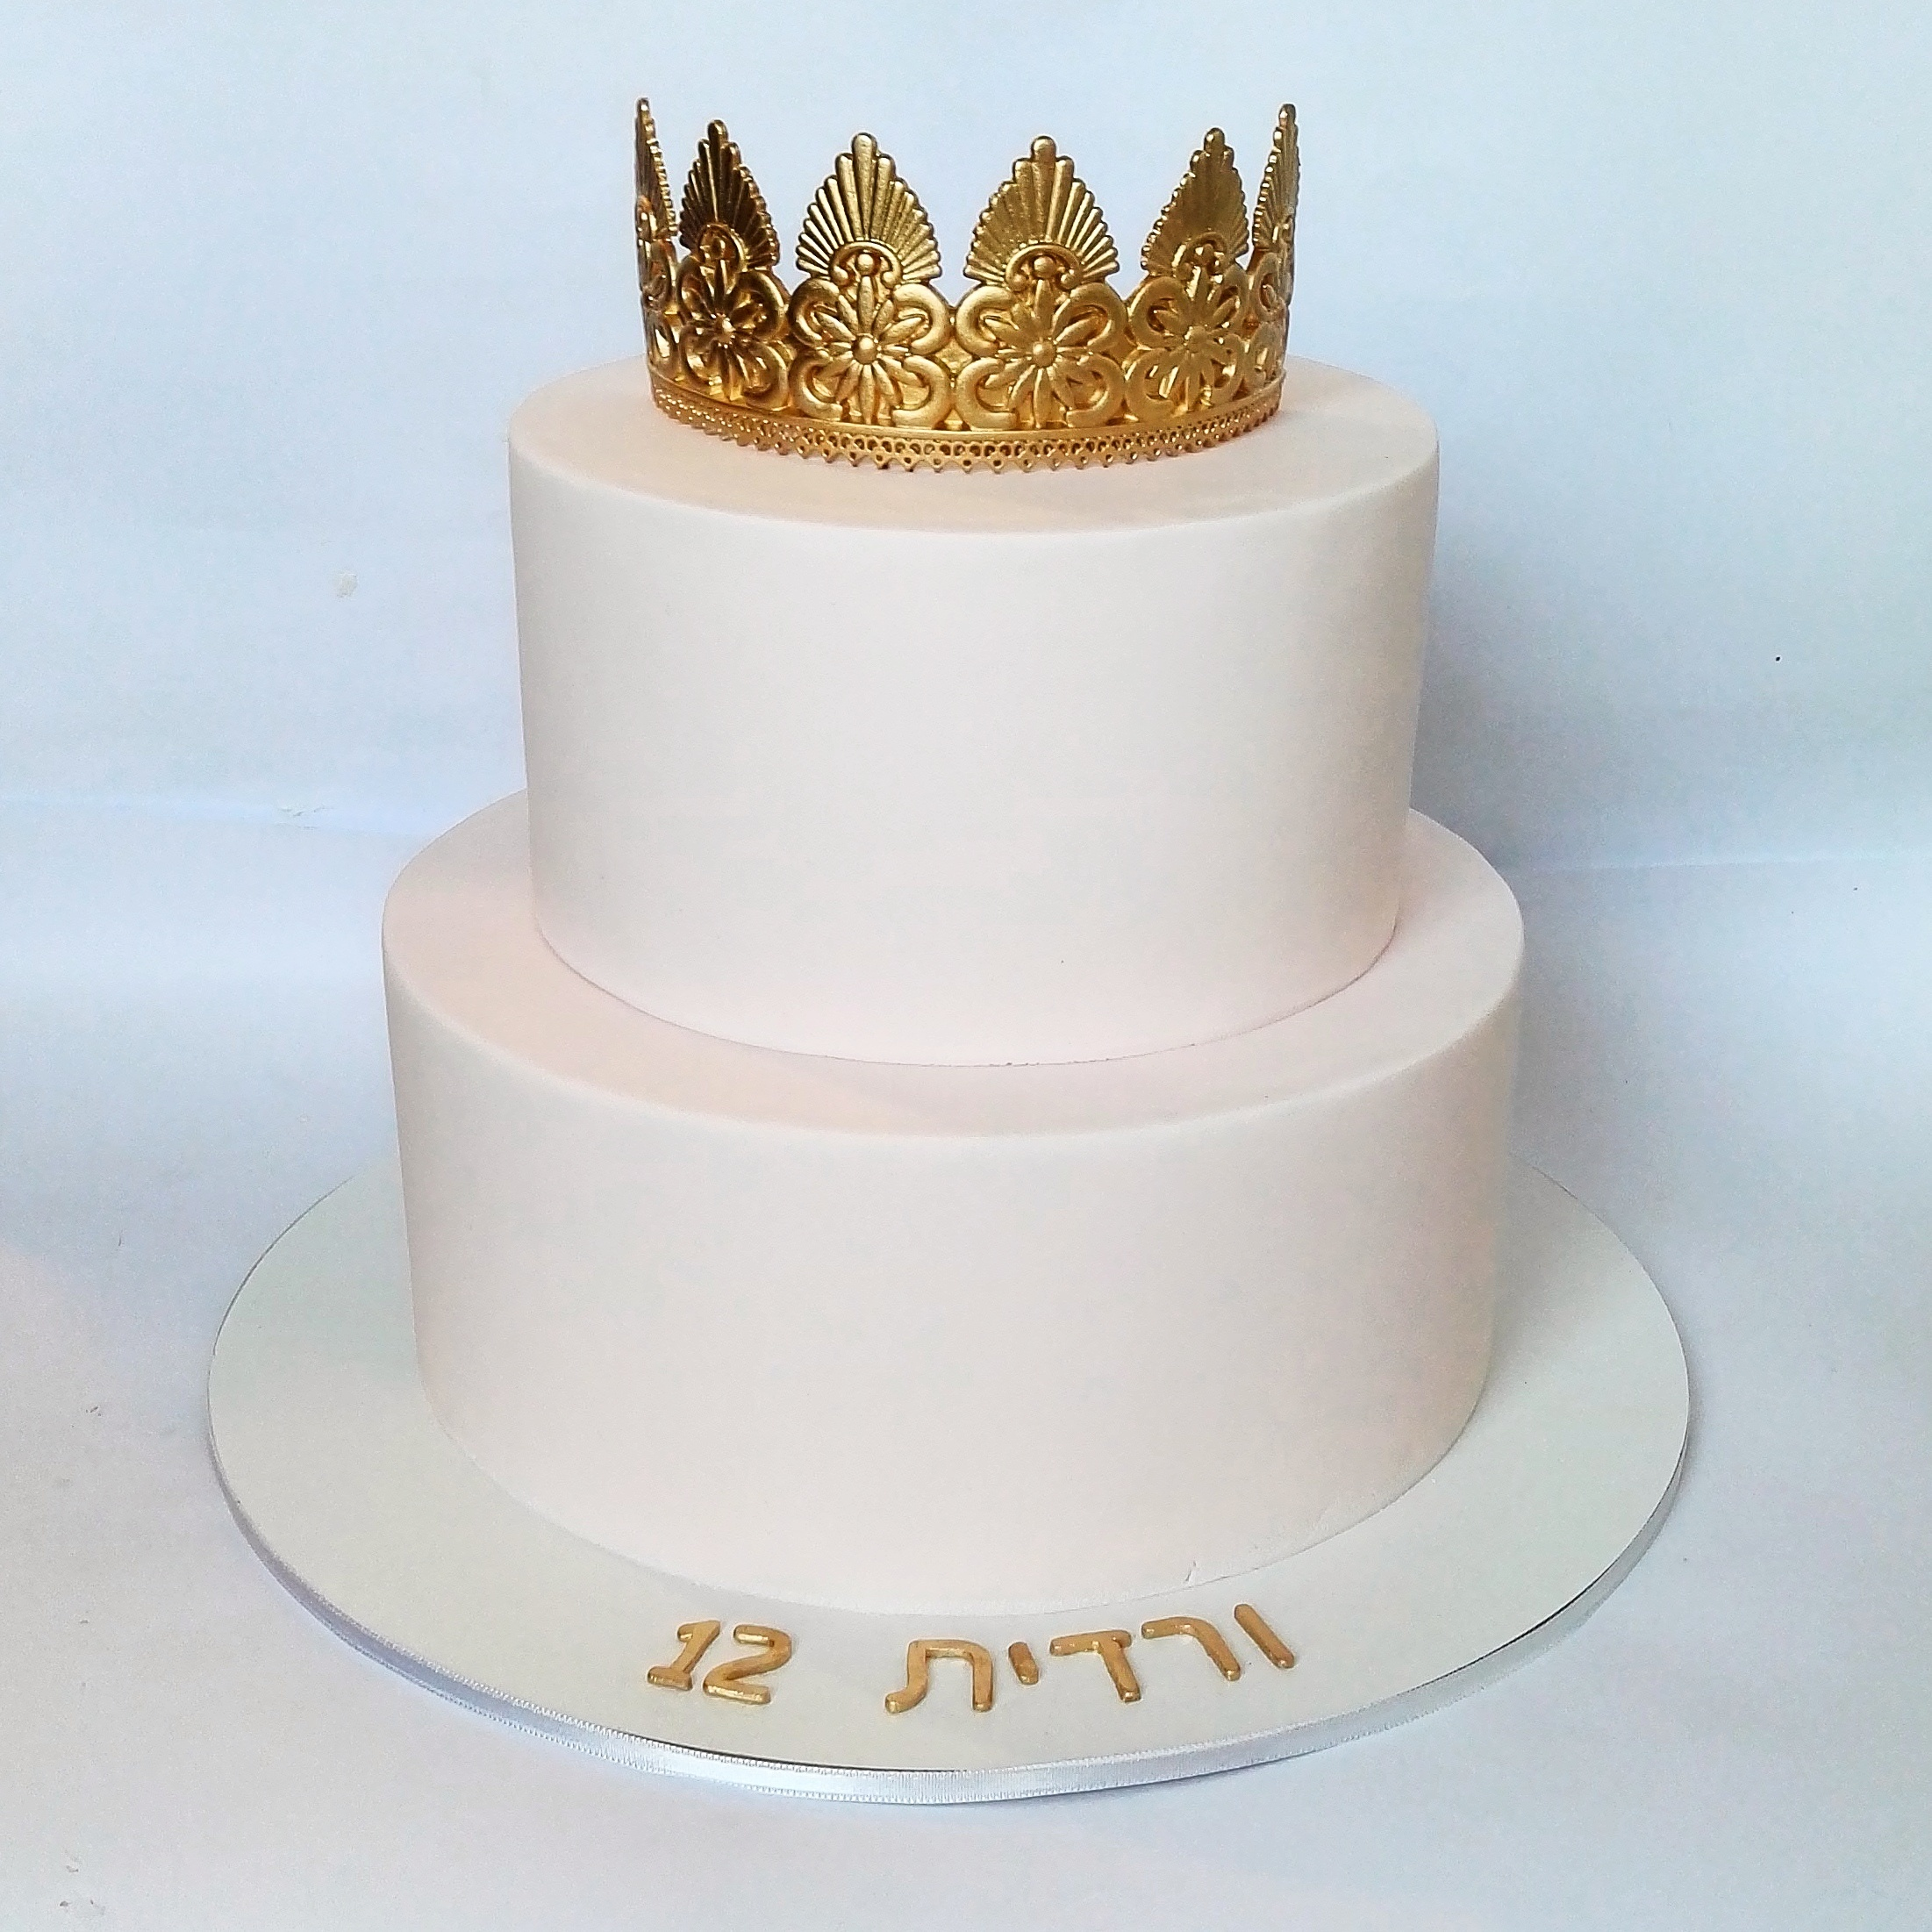 Baby cake with crown